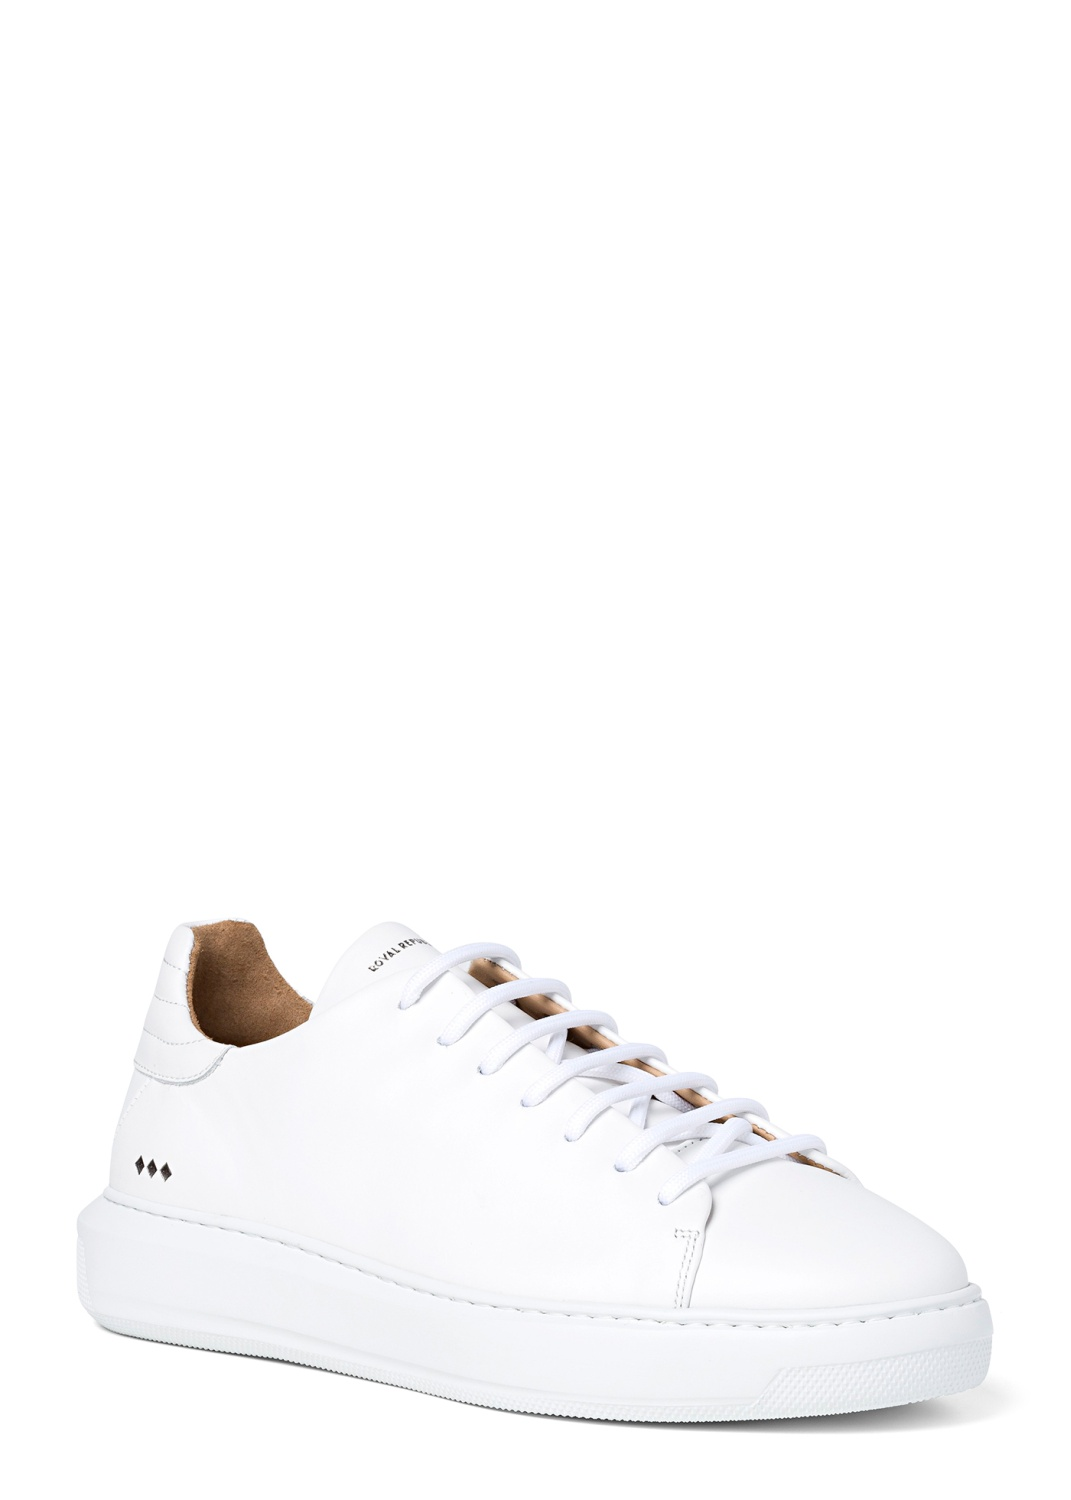 Cosmos Derby Shoe image number 1